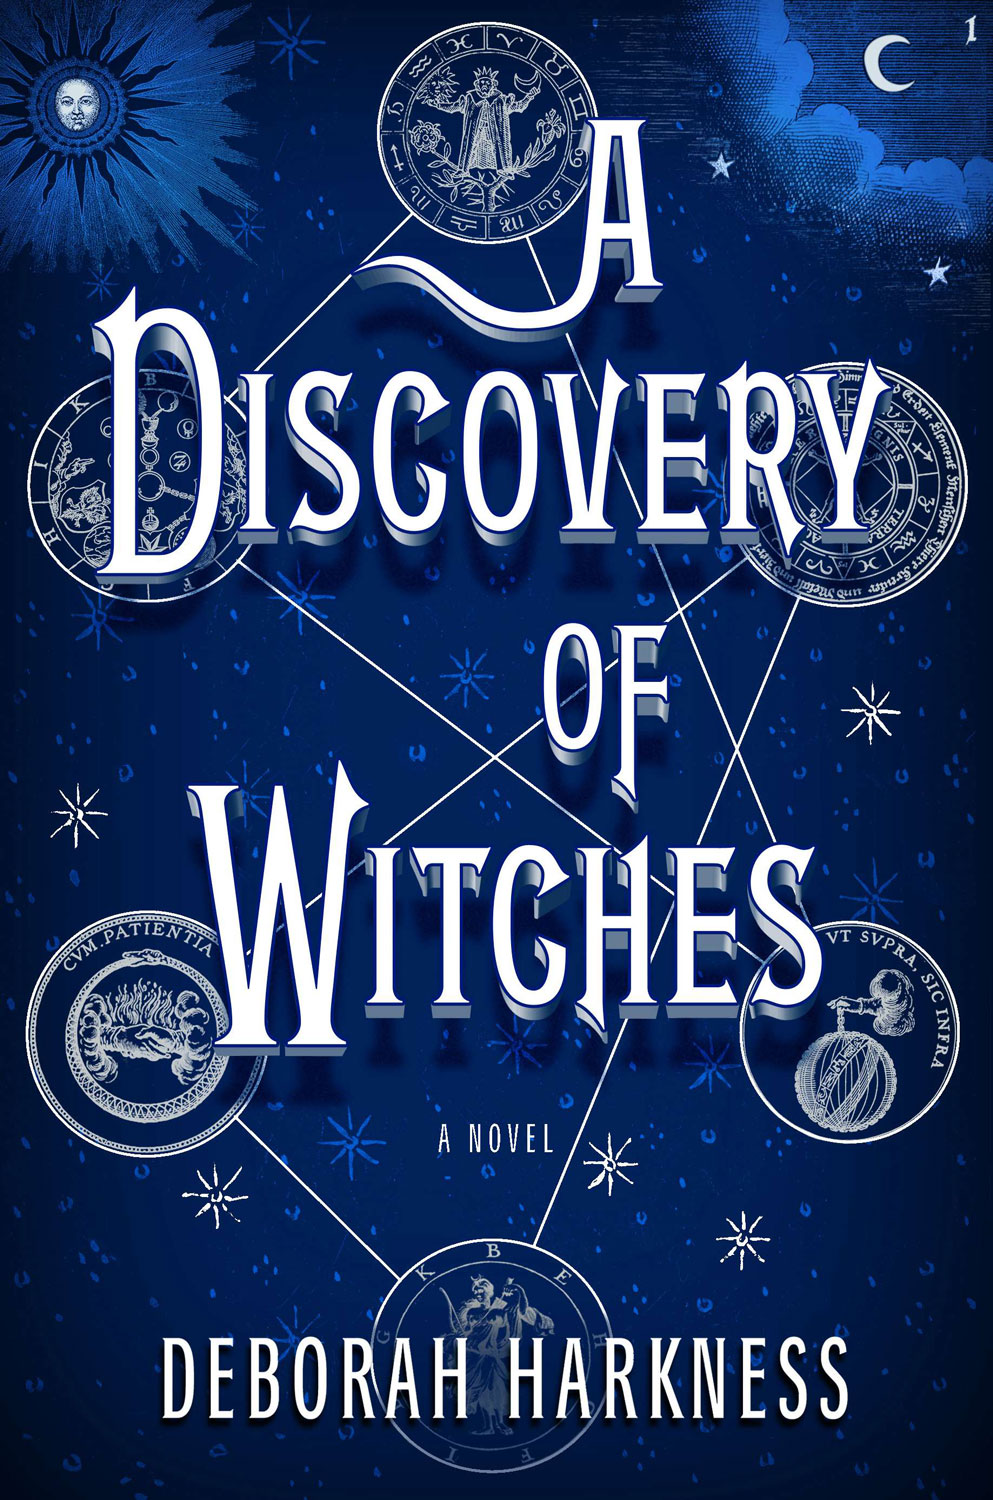 Deborah Harkness, A Discovery of Witches, All Souls Trilogy 1 (2011)